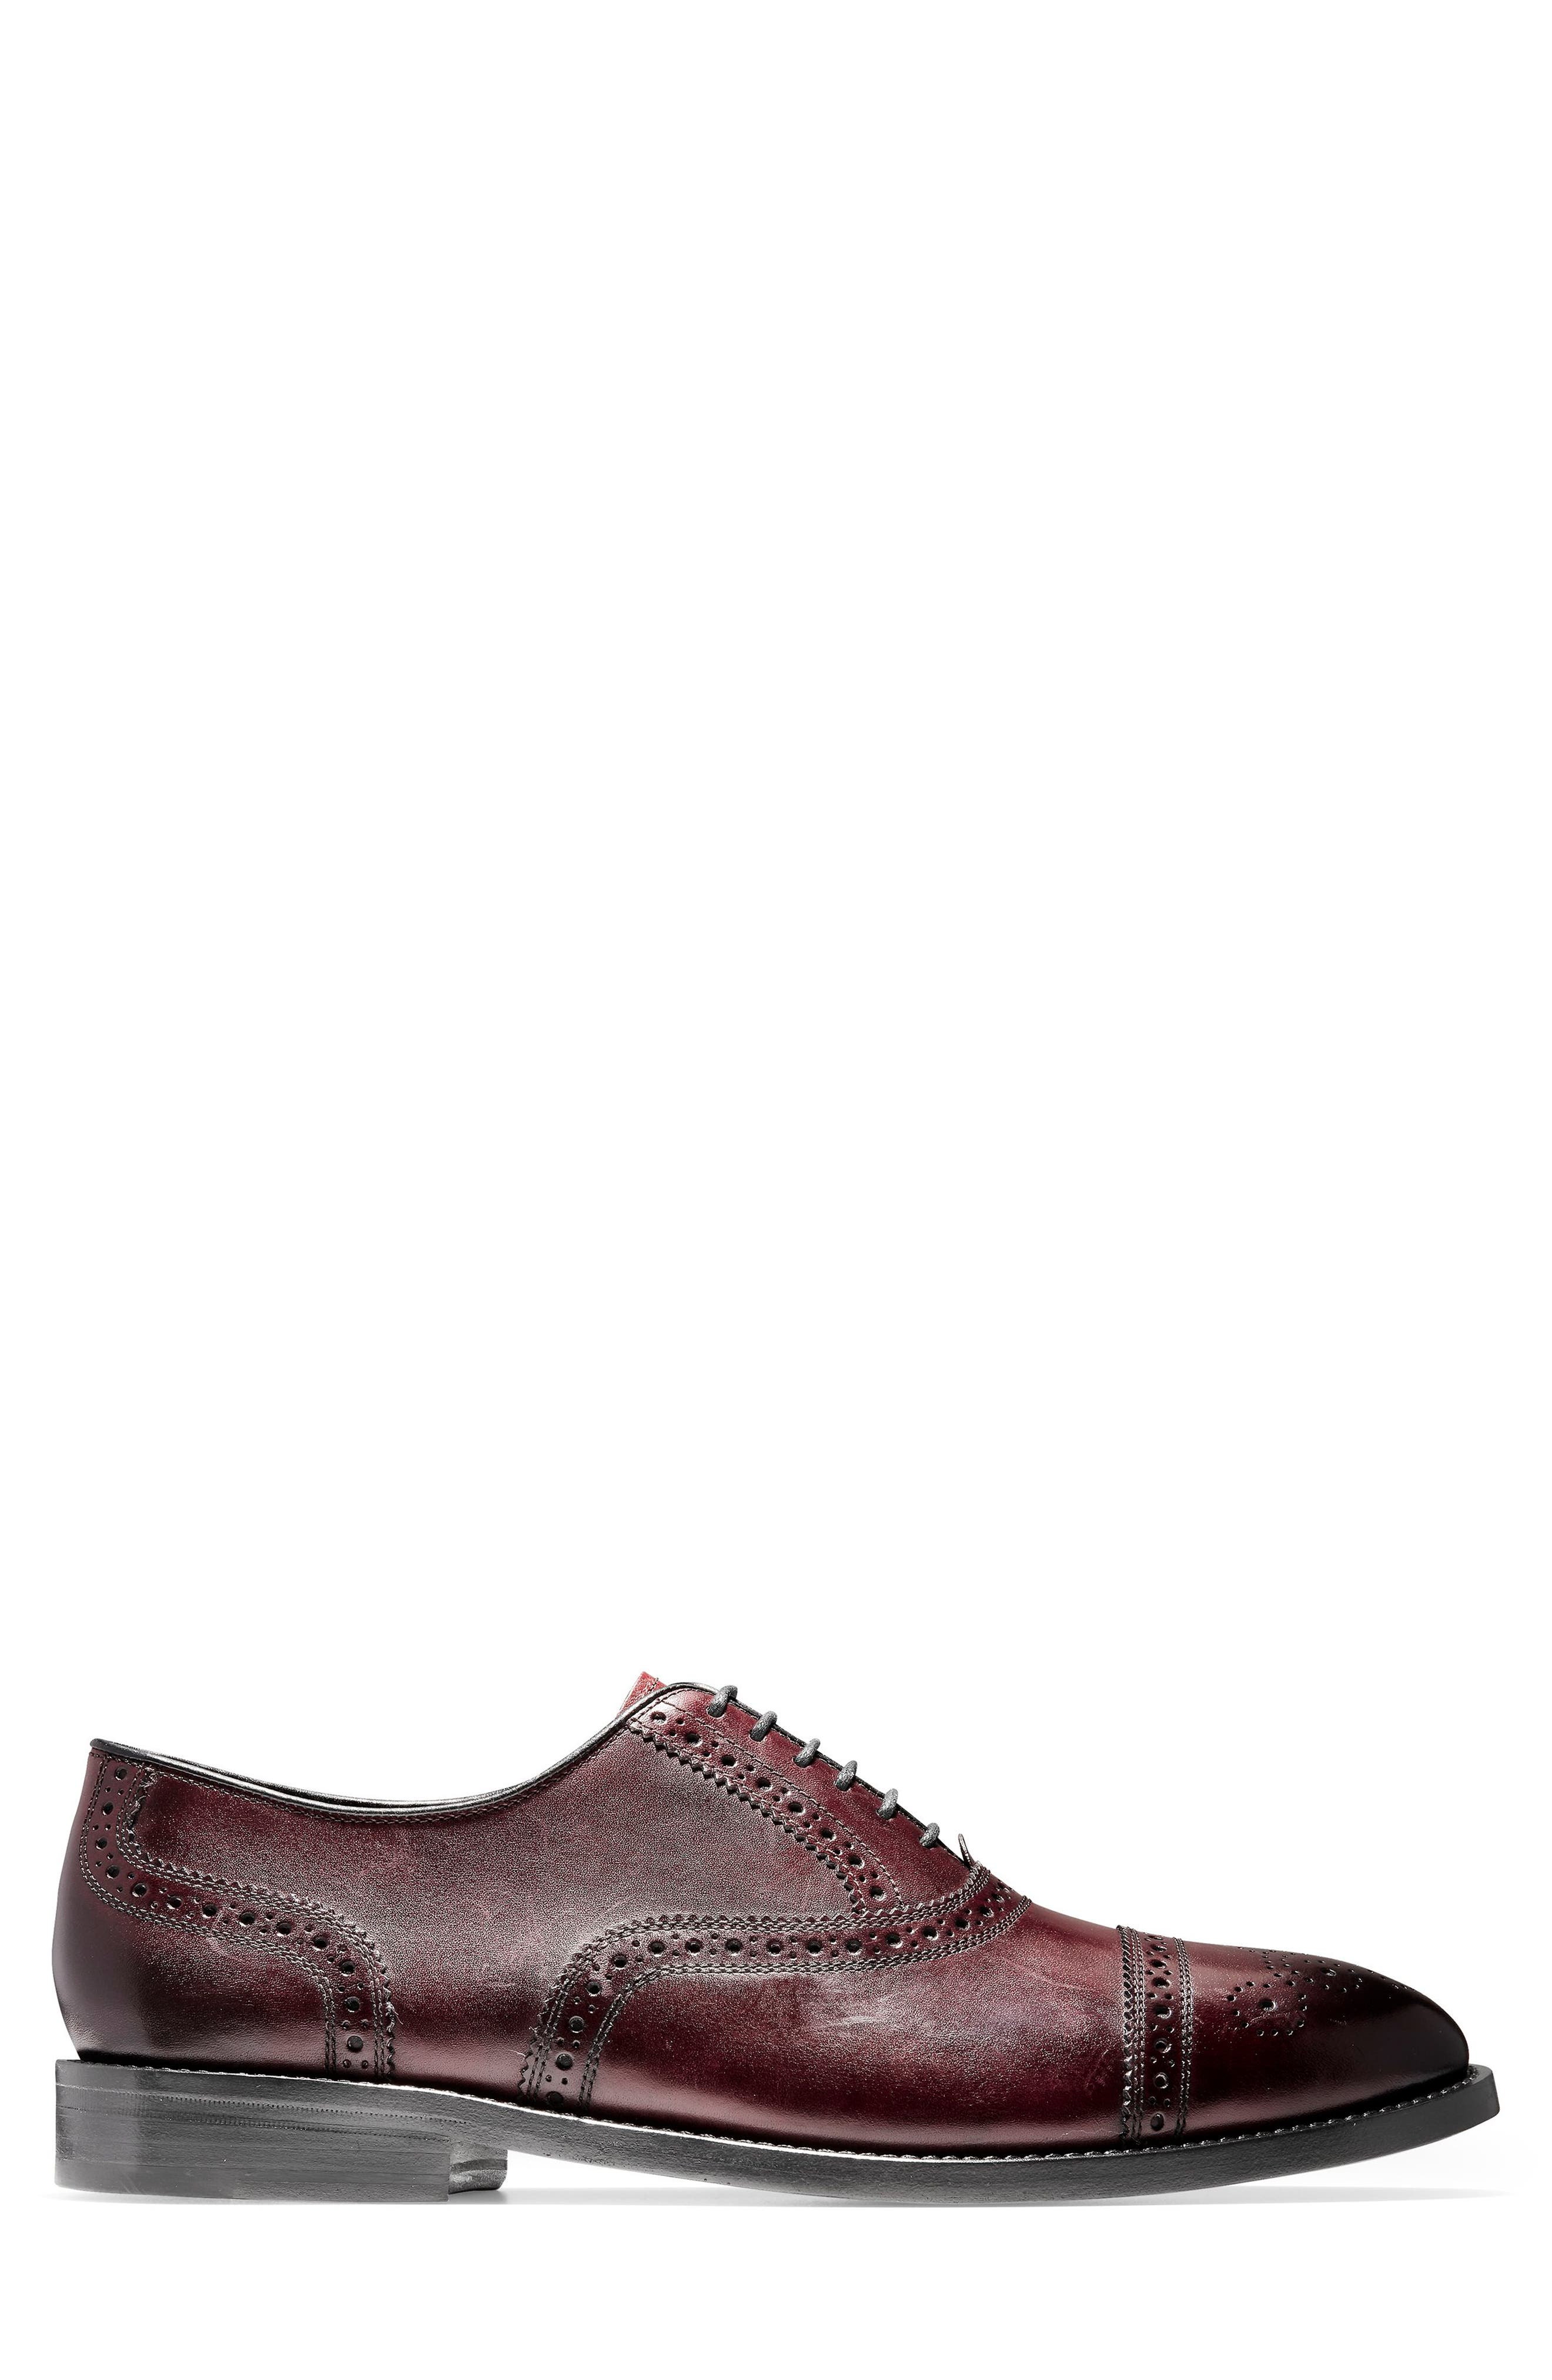 American Classics Kneeland Cap Toe Oxford,                             Alternate thumbnail 4, color,                             Oxblood Leather